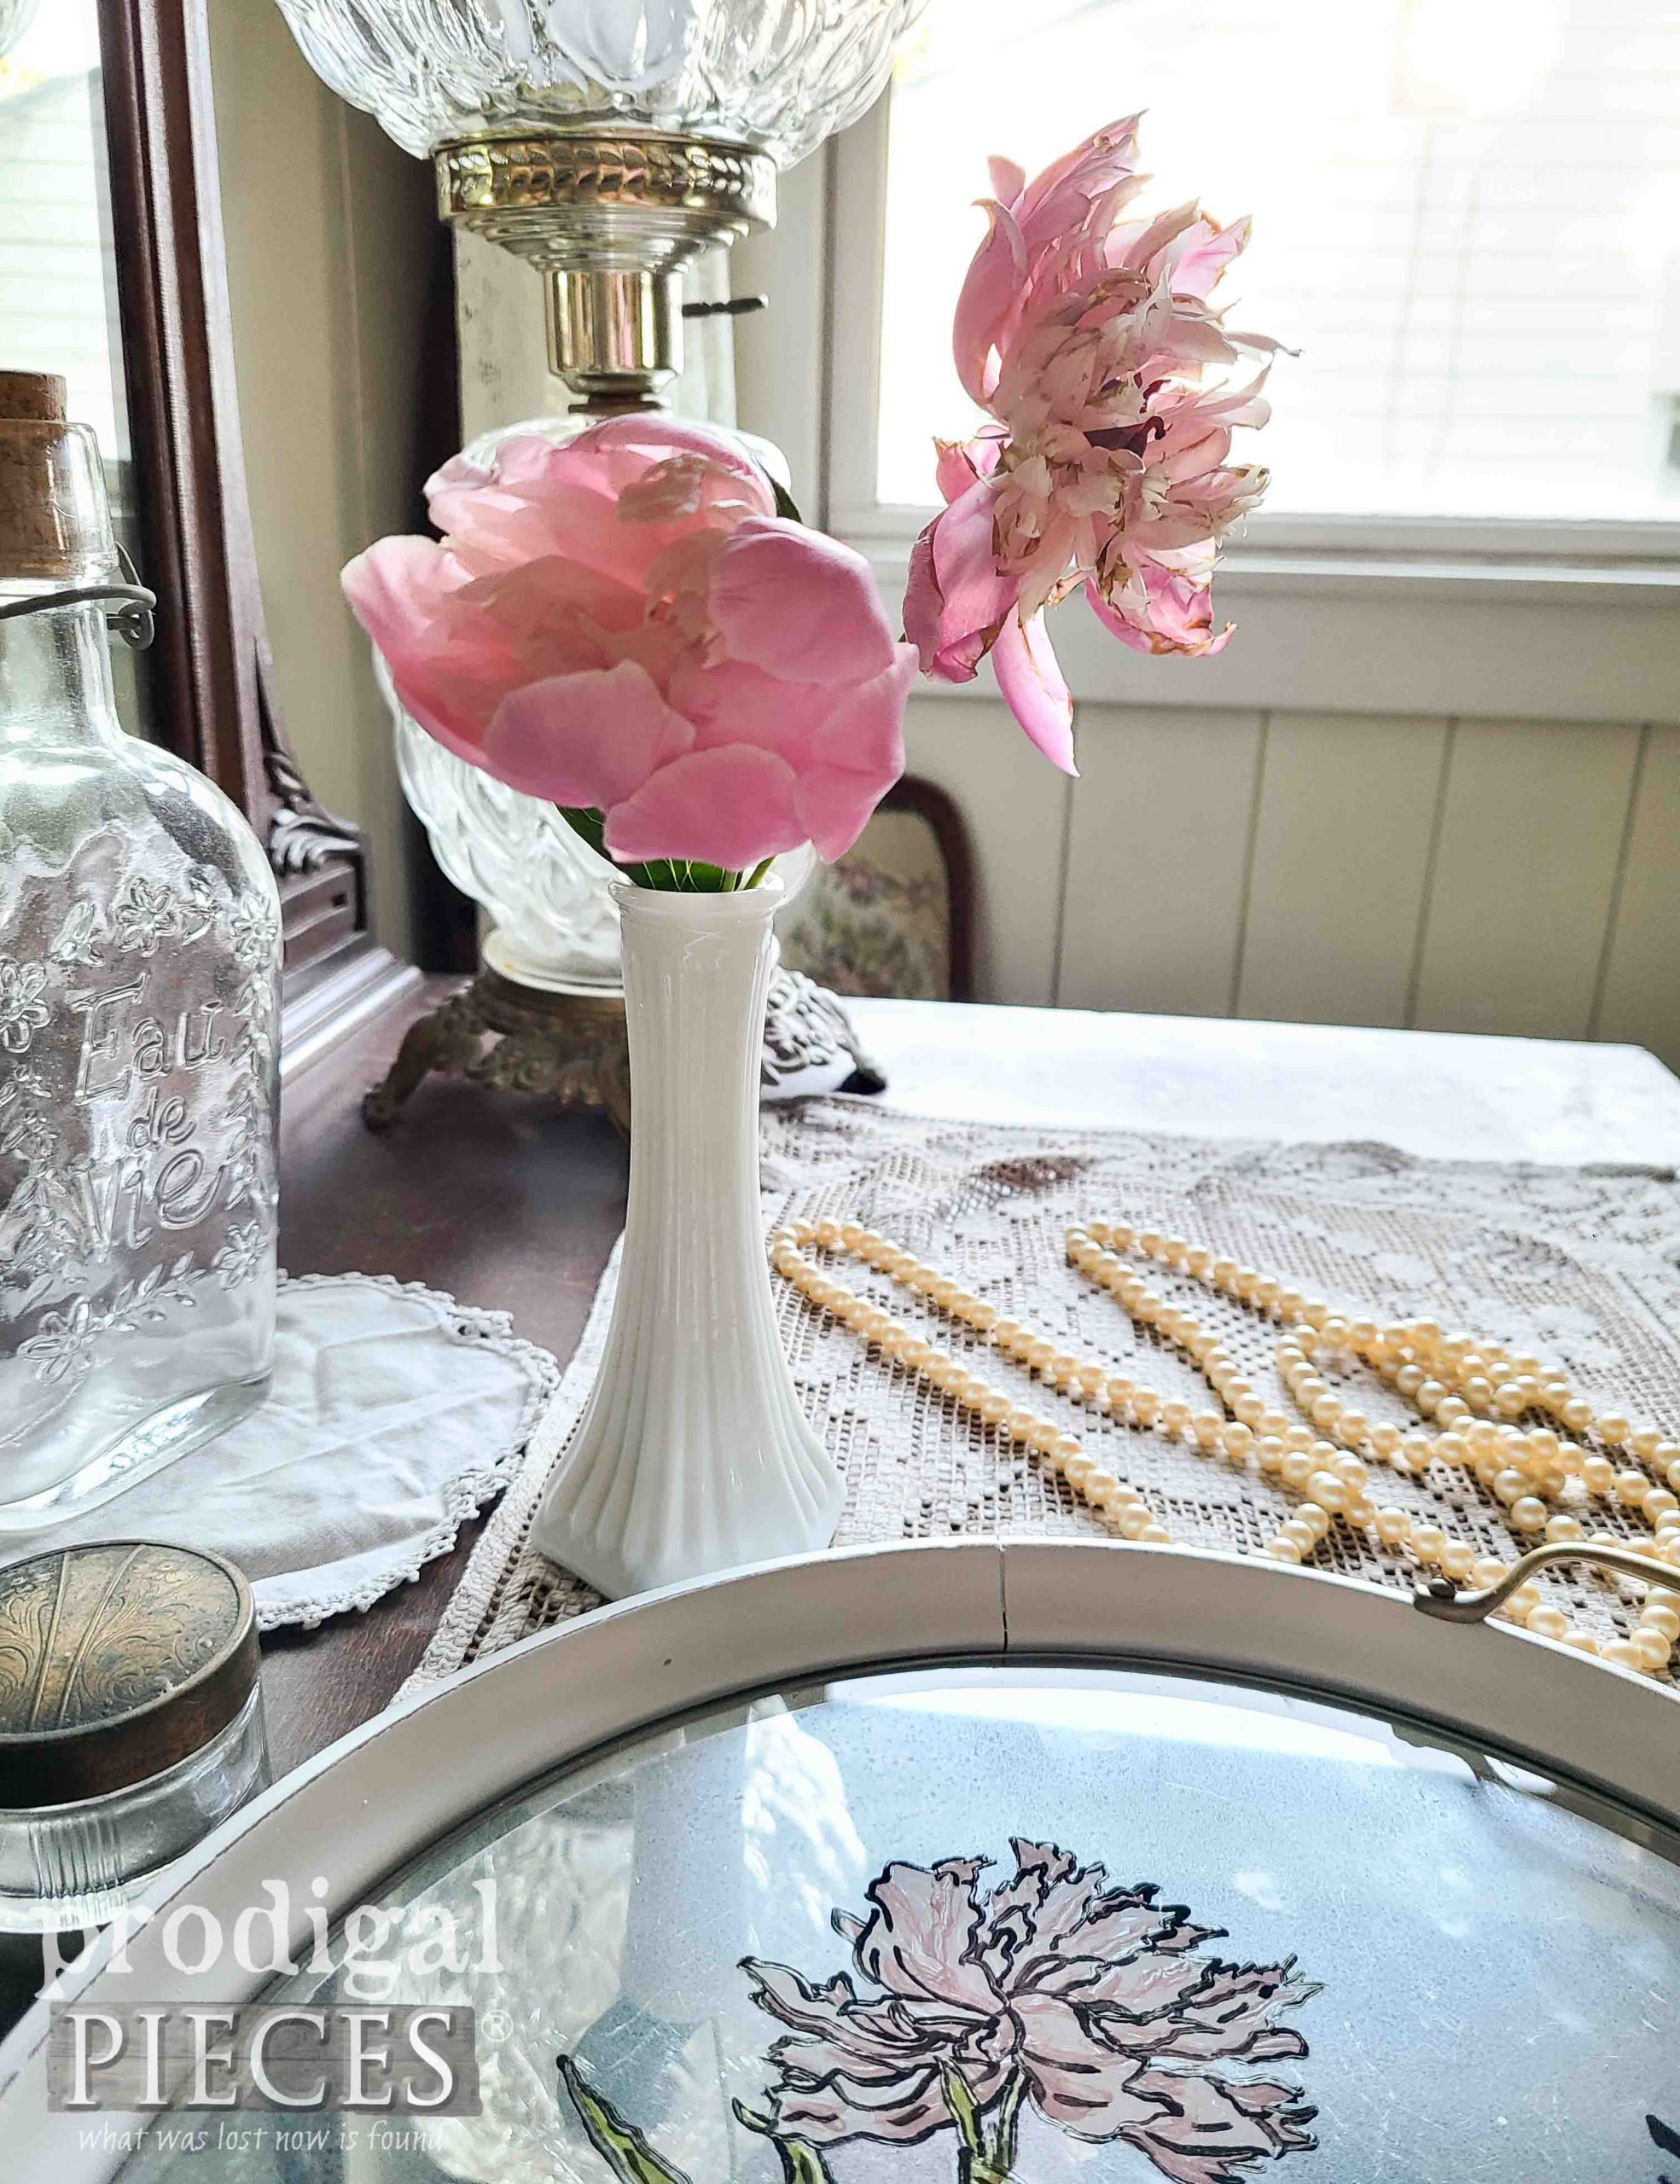 Pink Peony Flowers in Farmhouse Decor by Larissa of Prodigal Pieces | prodigalpieces.com #prodigalpieces #home #vintage #homedecor